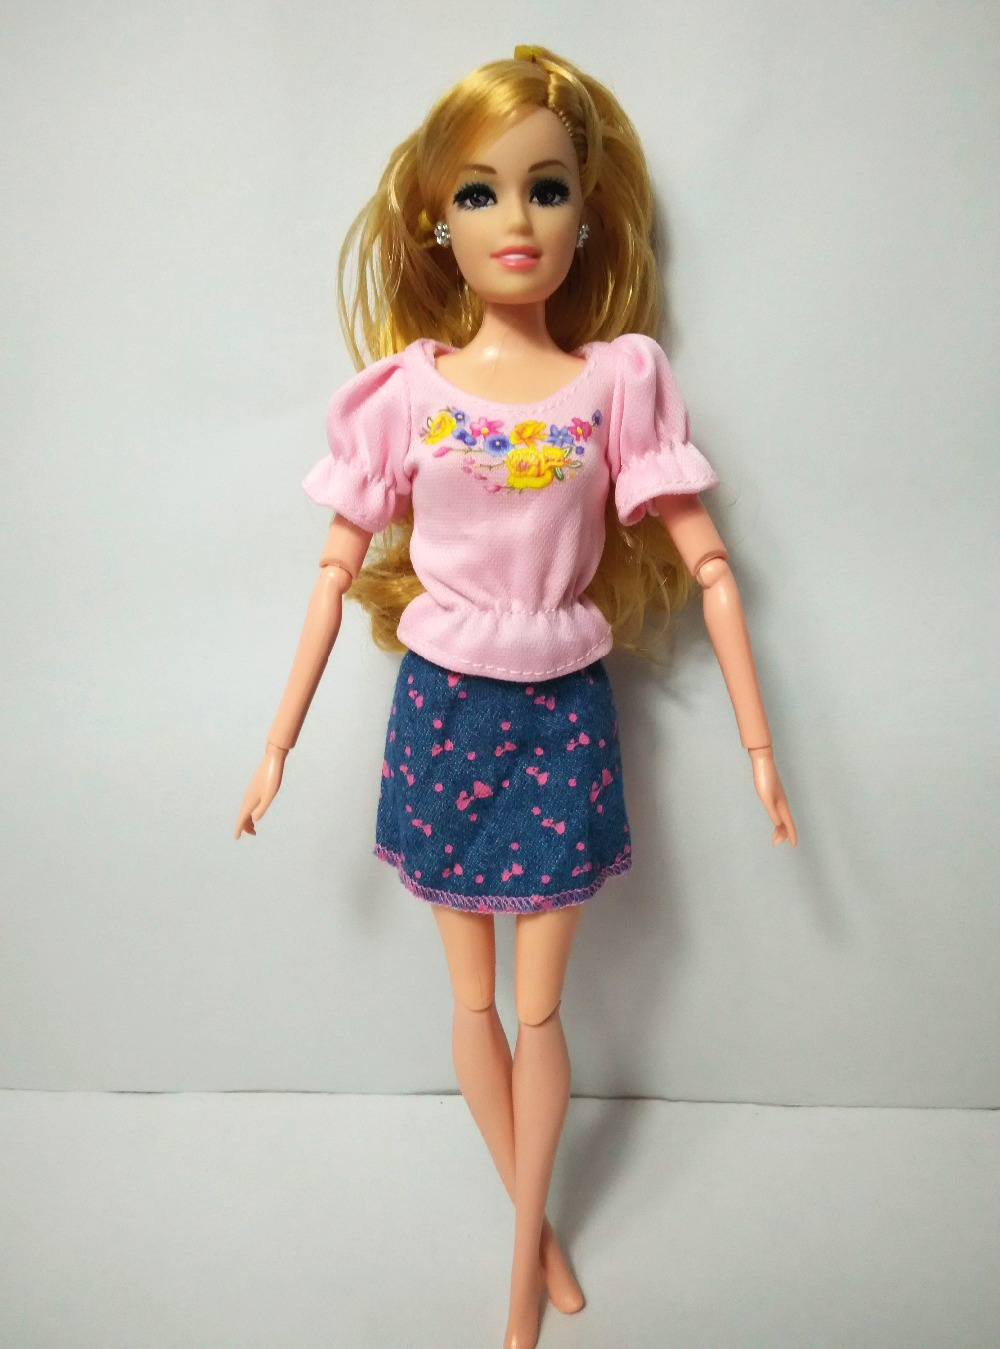 One Set Doll Skirt Cute Pattern Design Dresses Girl Fashion Evening Clothes For Barbie Dolls